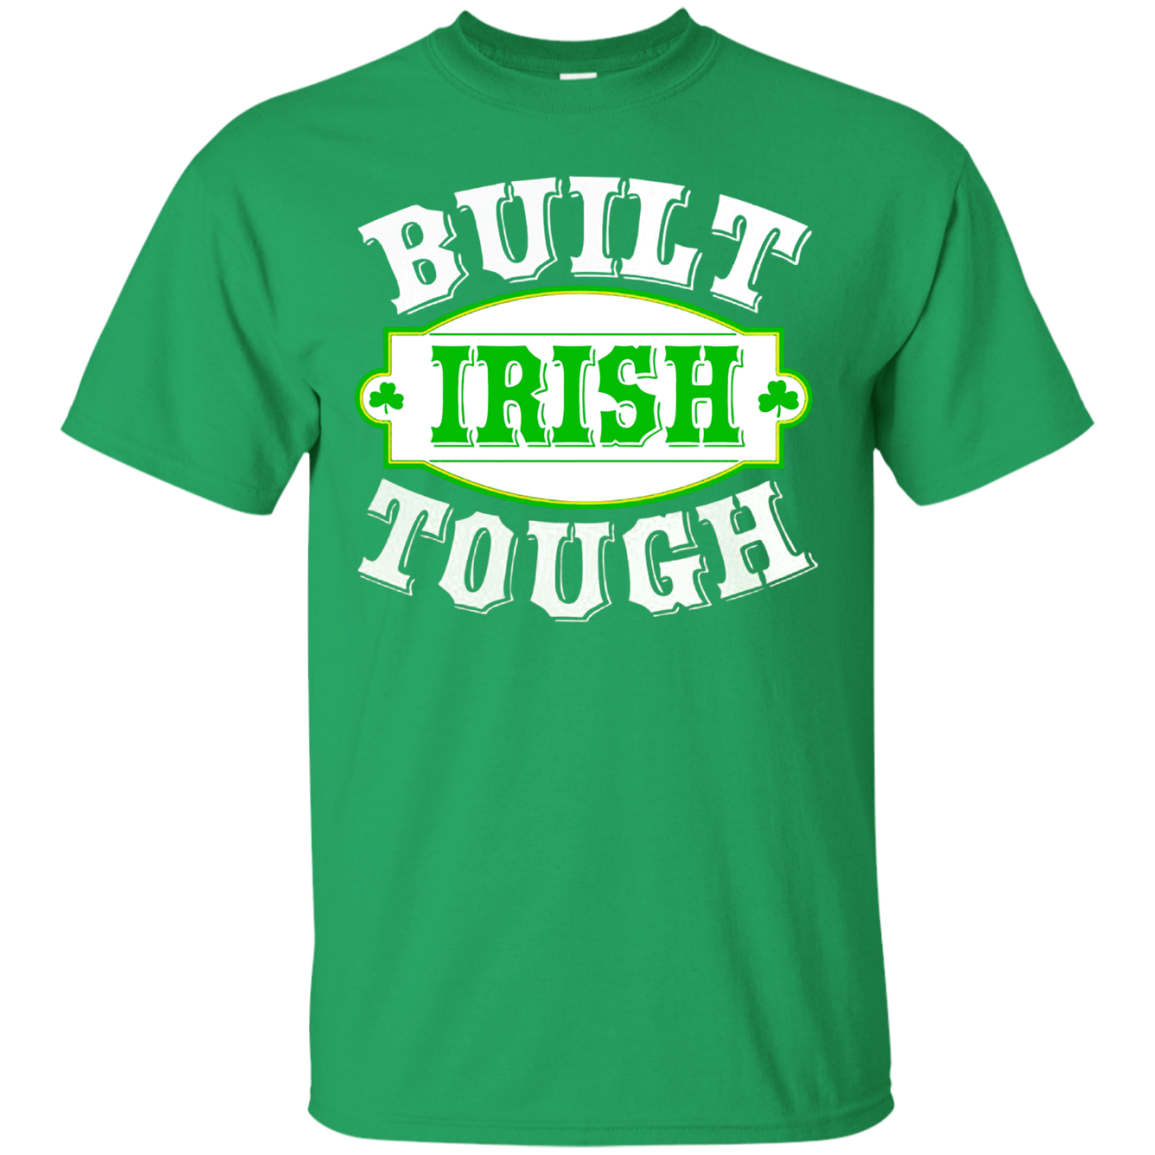 Irish Built Tough Cool St Patrick Day Clothing St Patrick's Day Shirts Hoodies For Men And Women